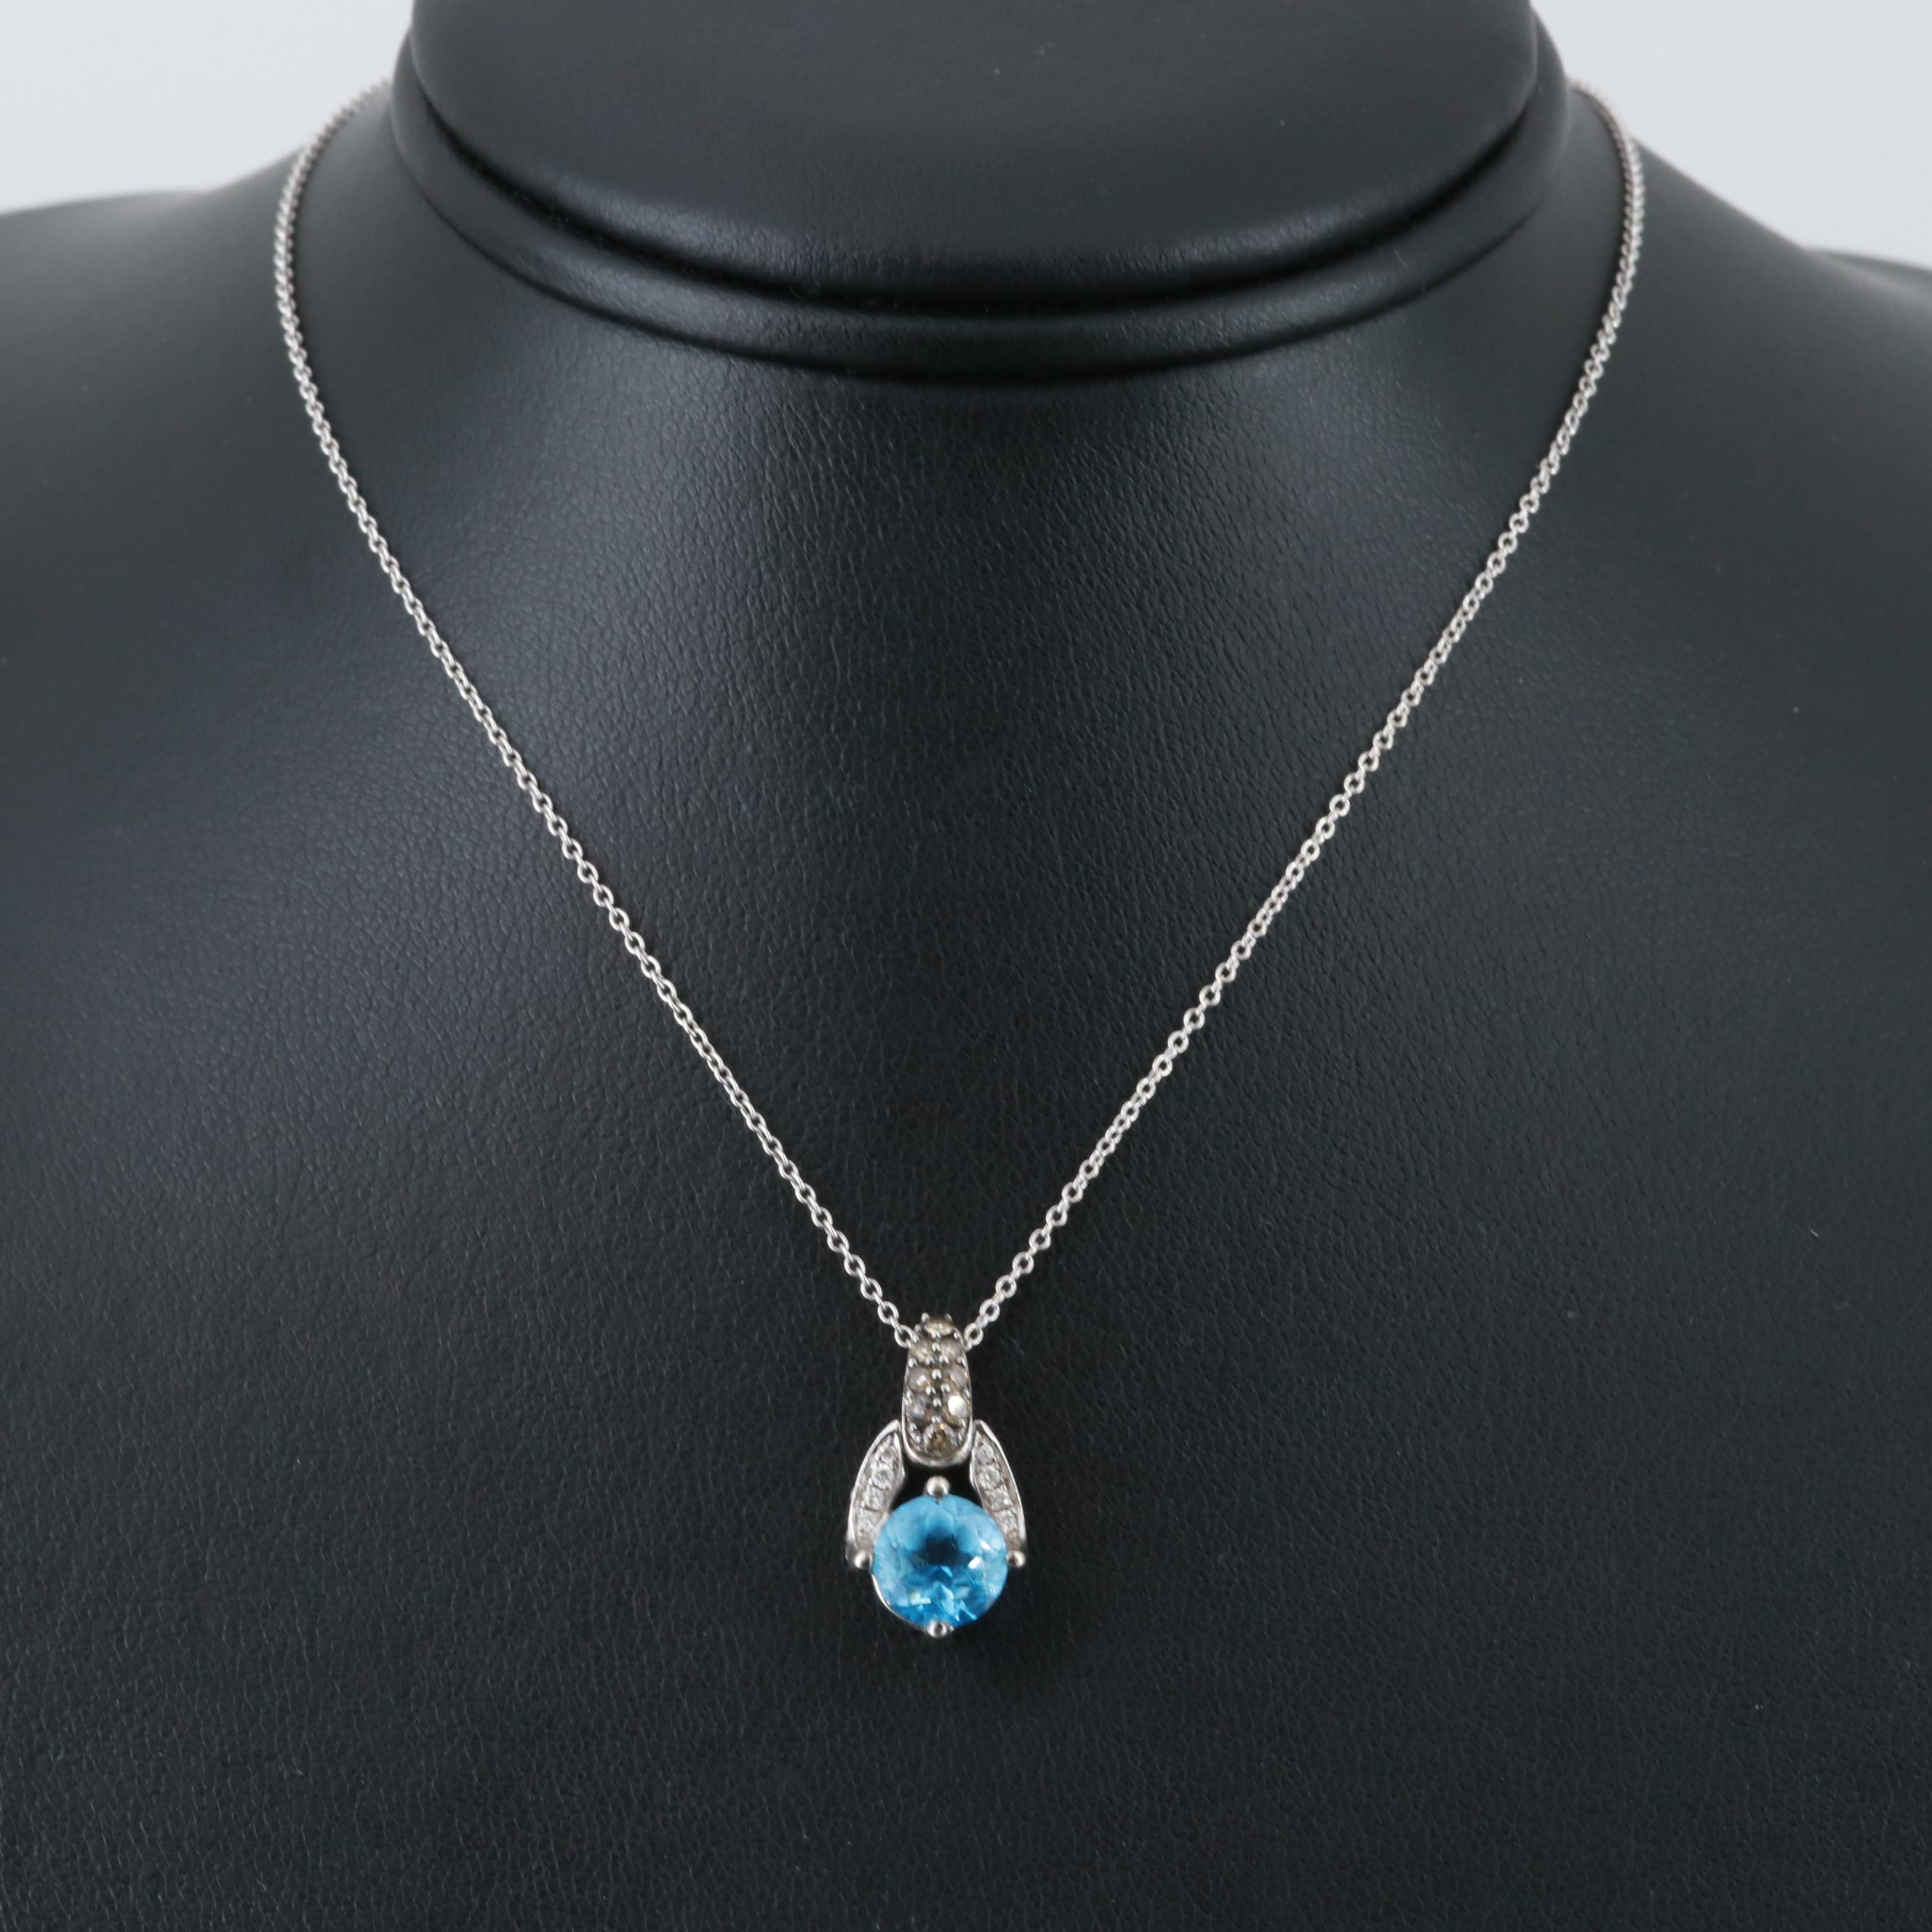 Le Vian 14K White Gold Blue Topaz and Diamond Pendant with Chain Necklace